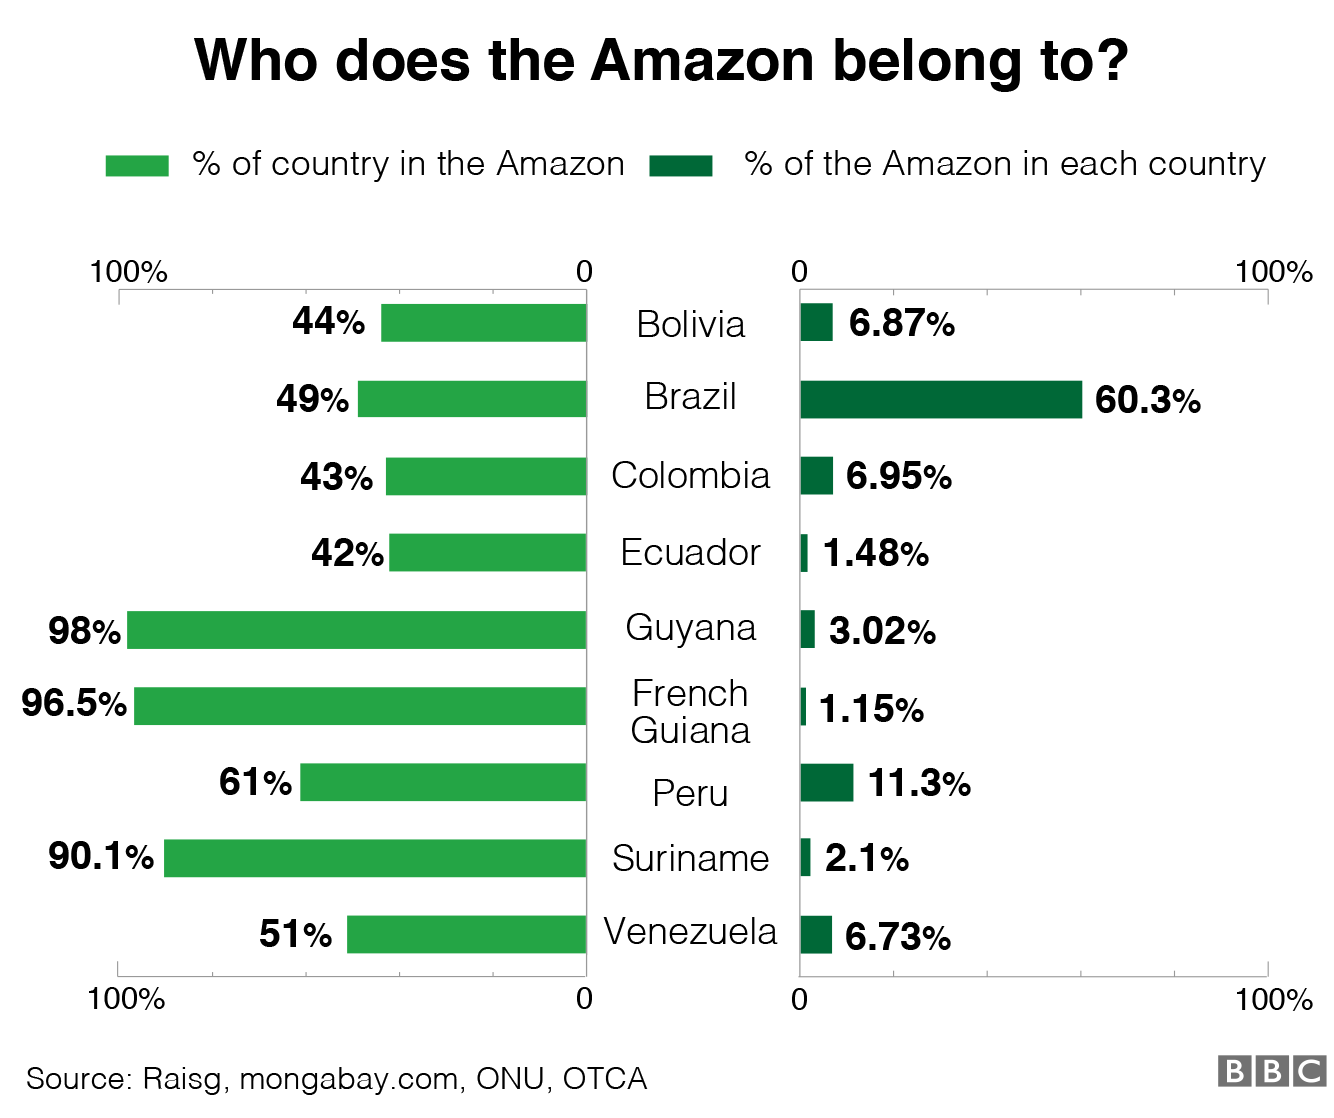 Graphic showing how much of the Amazon belongs to each country